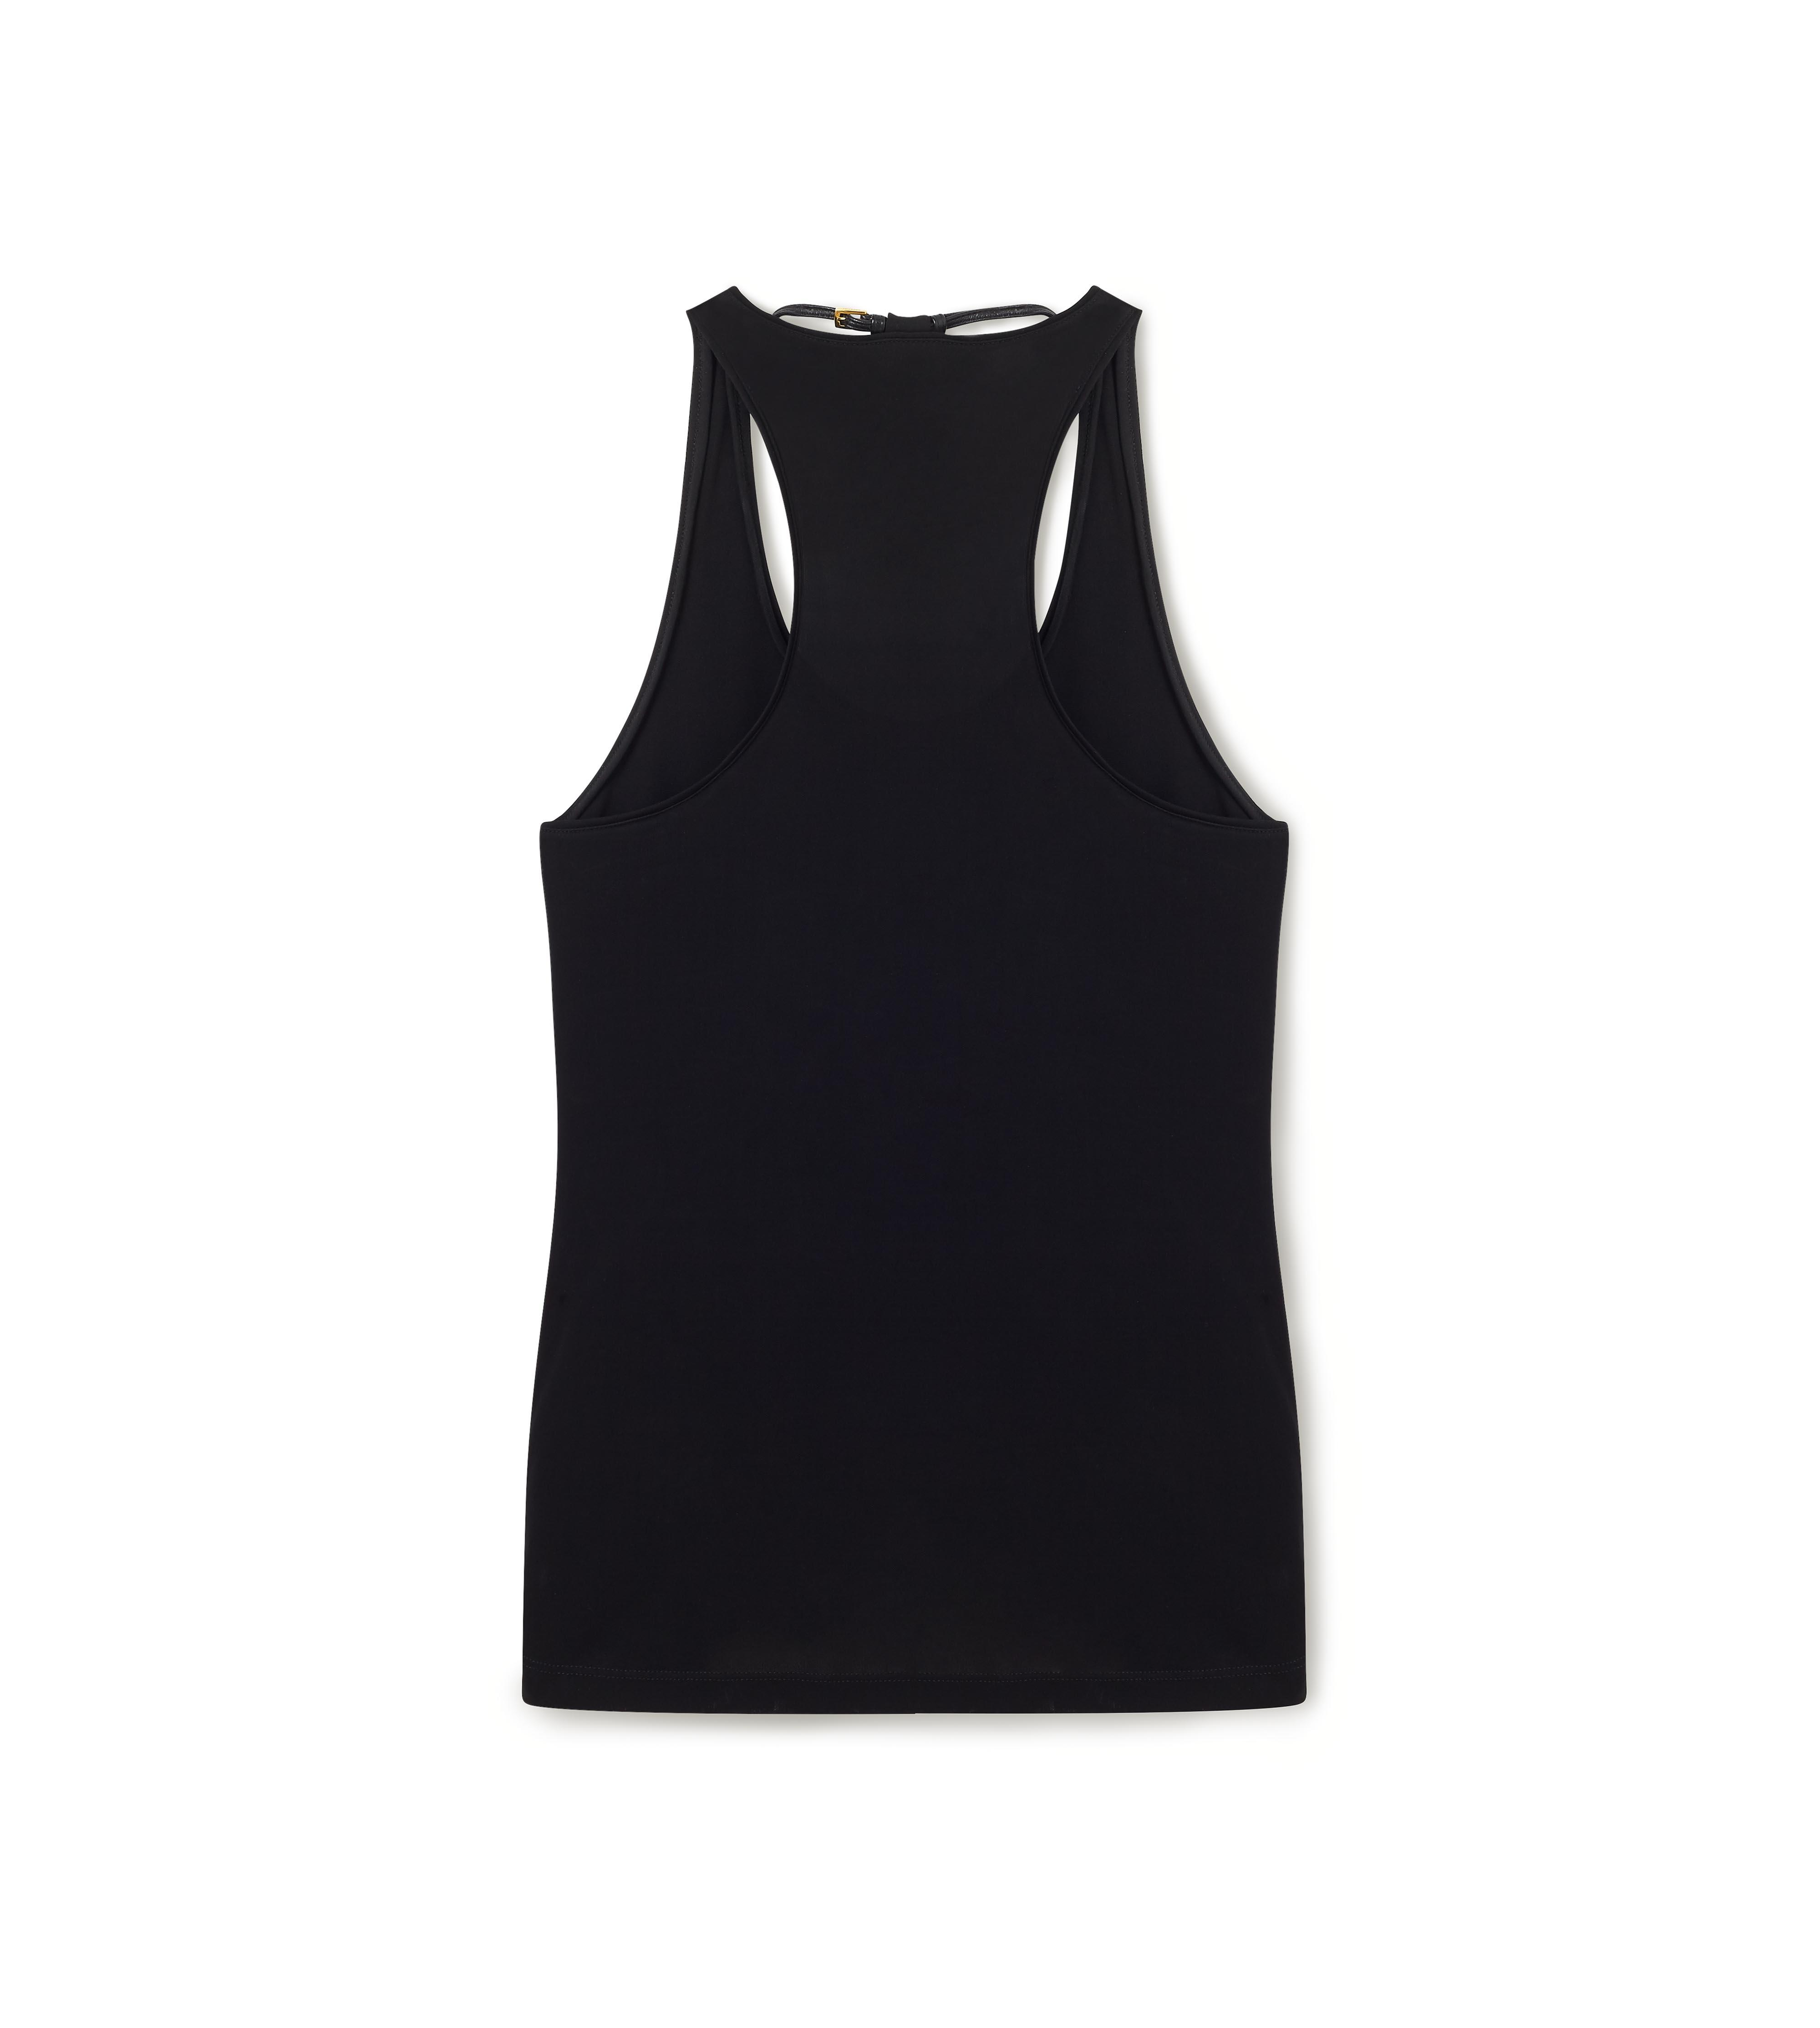 SCOOP NECK TANK TOP WITH PADLOCK ON LEATHER NECKLACE B thumbnail